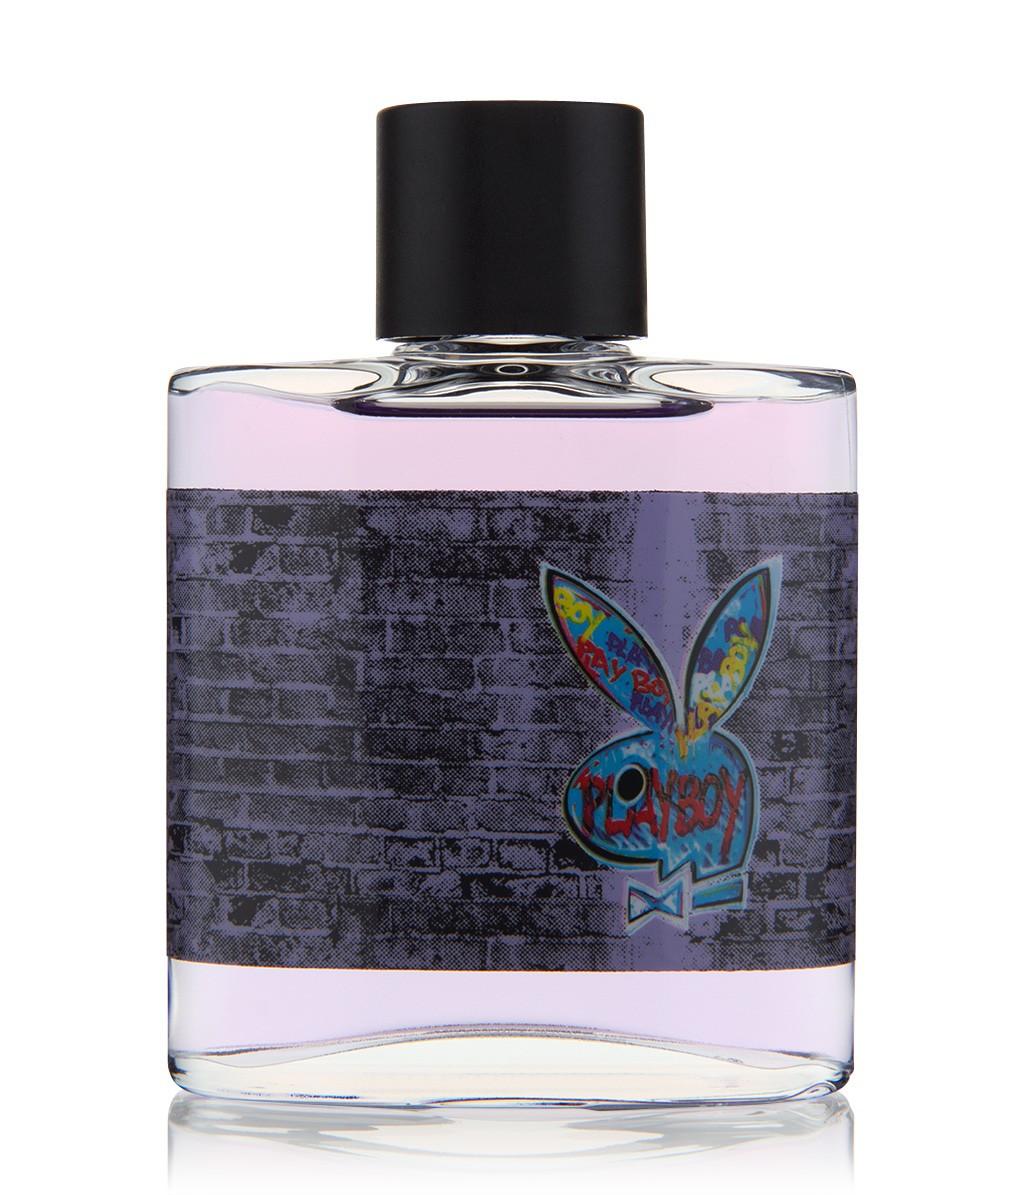 Playboy New York (Grafity) Aftershavelotion 100ml